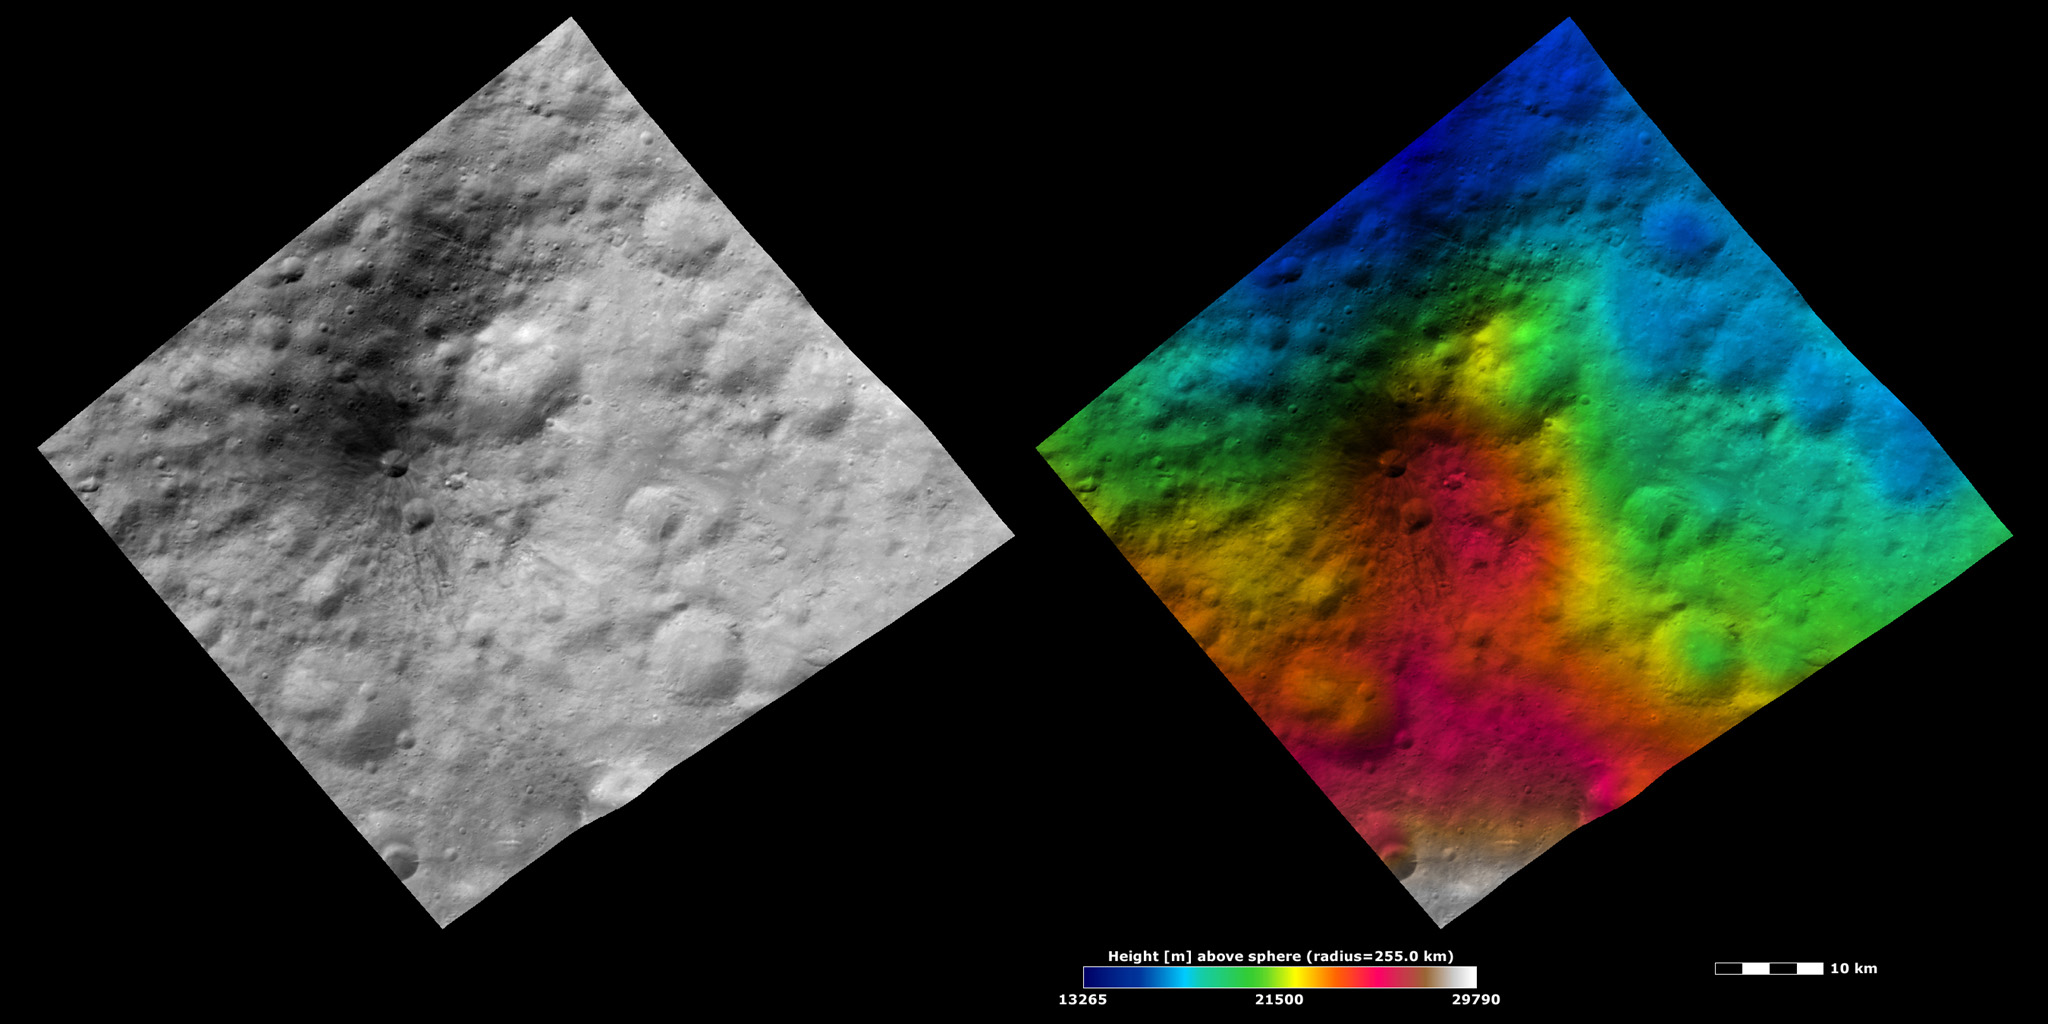 Brightness and Topography Images of a Dark Hill